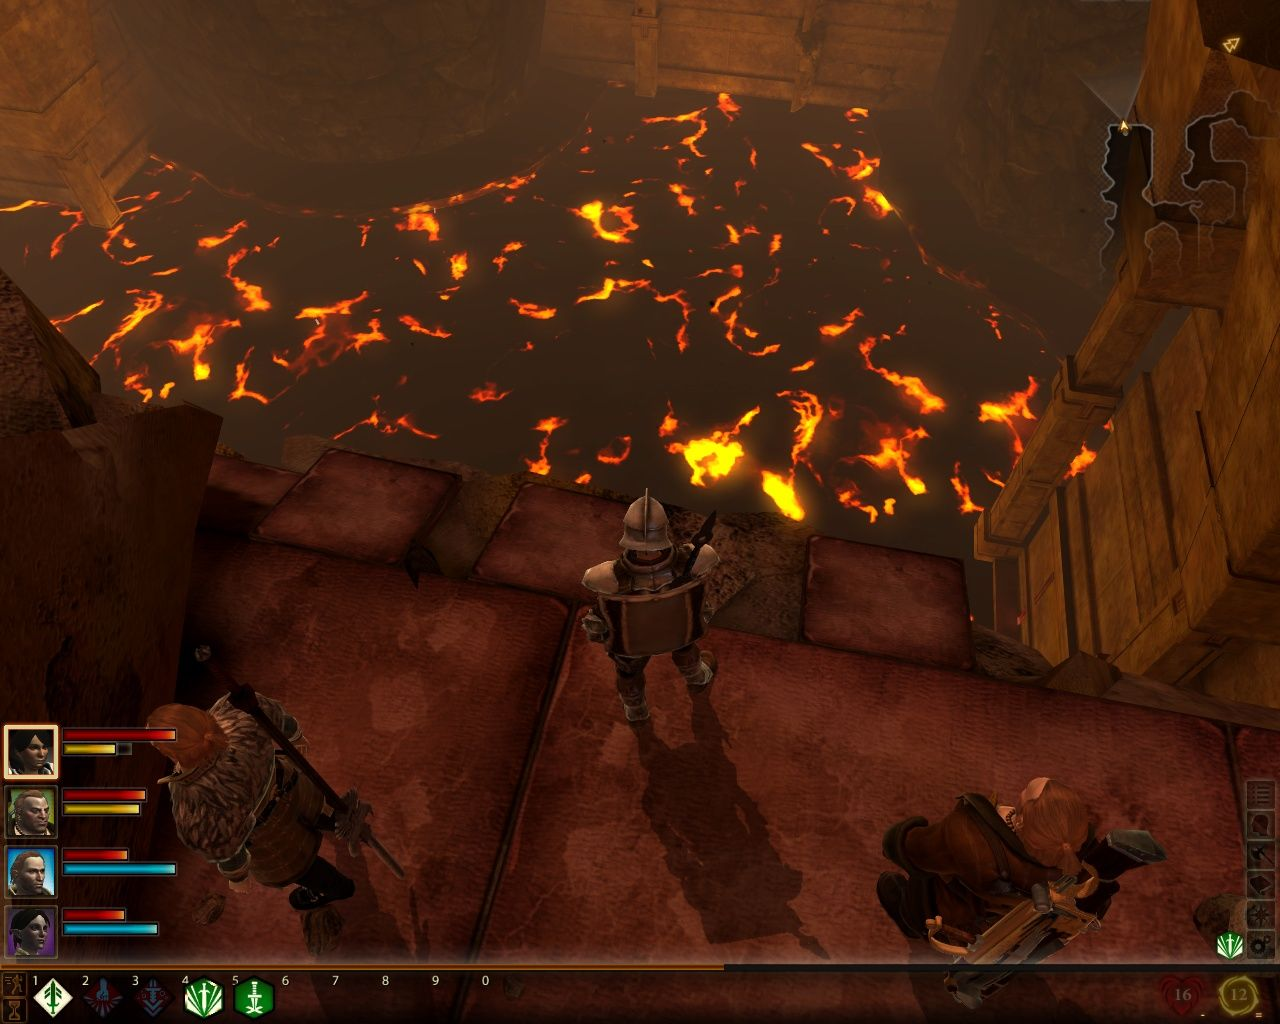 Dragon Age II Windows That's a lot of lava, guys. Wouldn't want to fall down there, now would we?